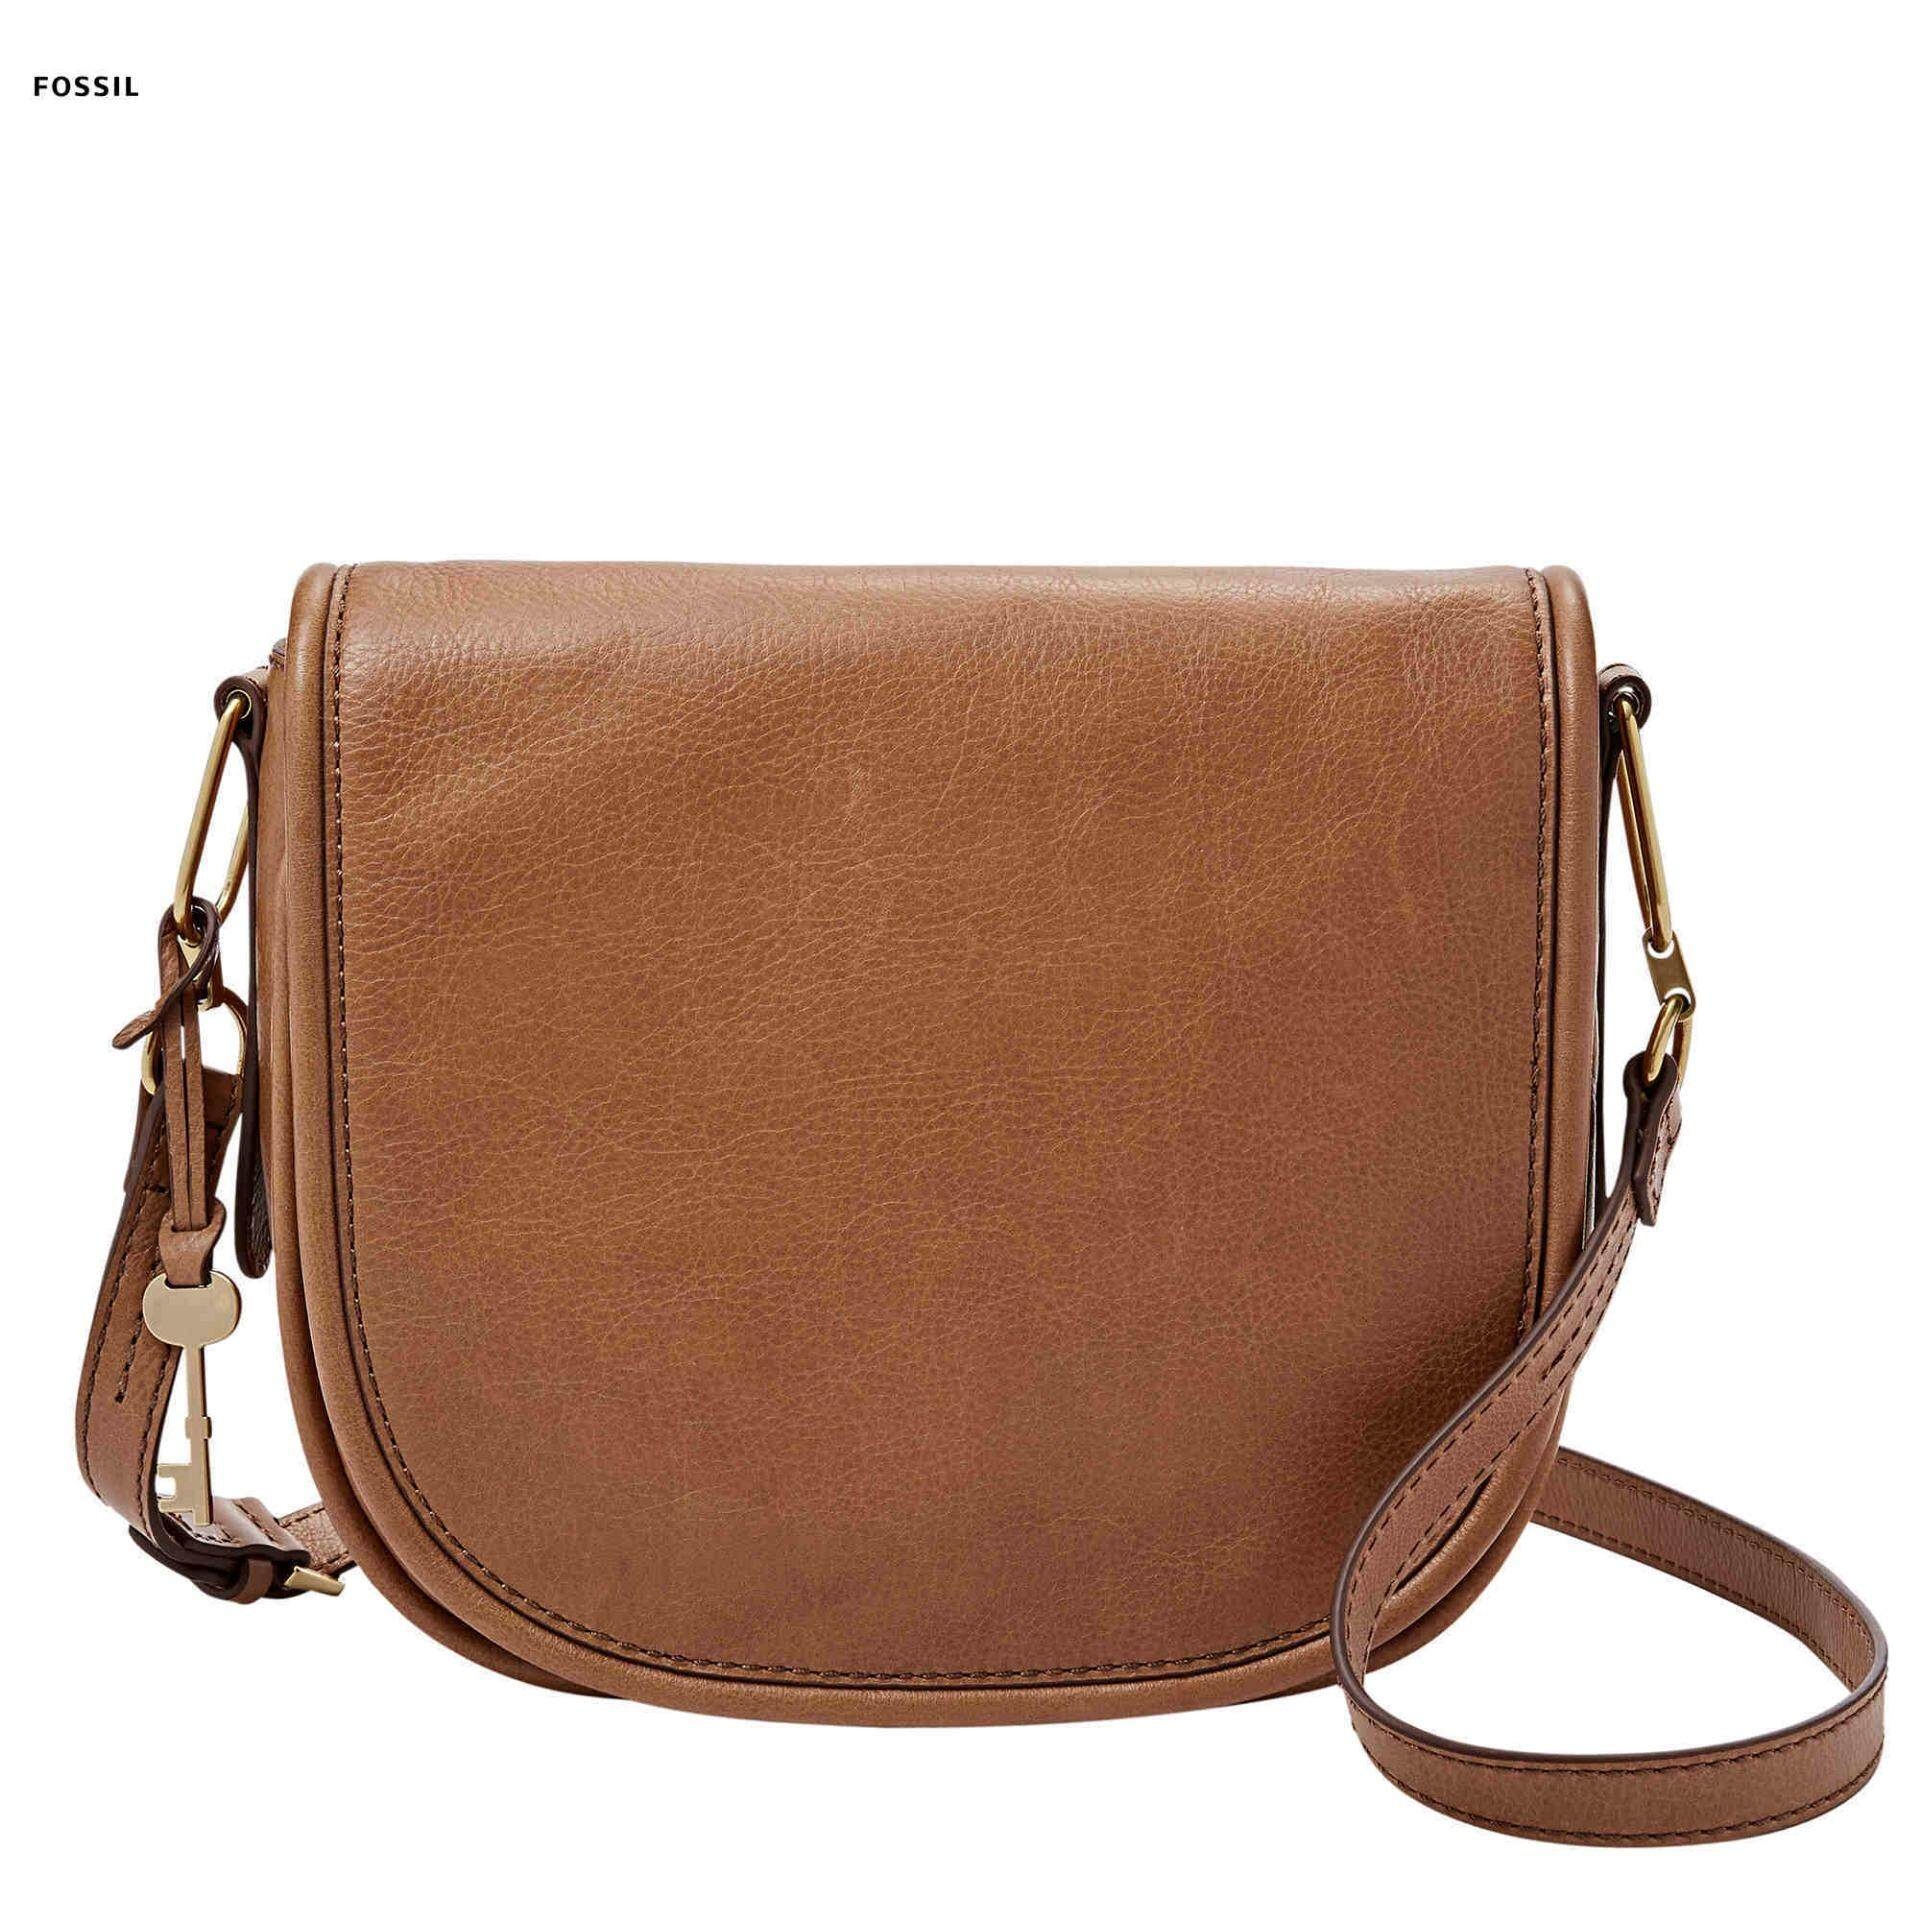 Fossil Women Bags Price In Malaysia Best Lazada Emma Tote Blue Print Rumi Brown Sling Bag Zb7275216